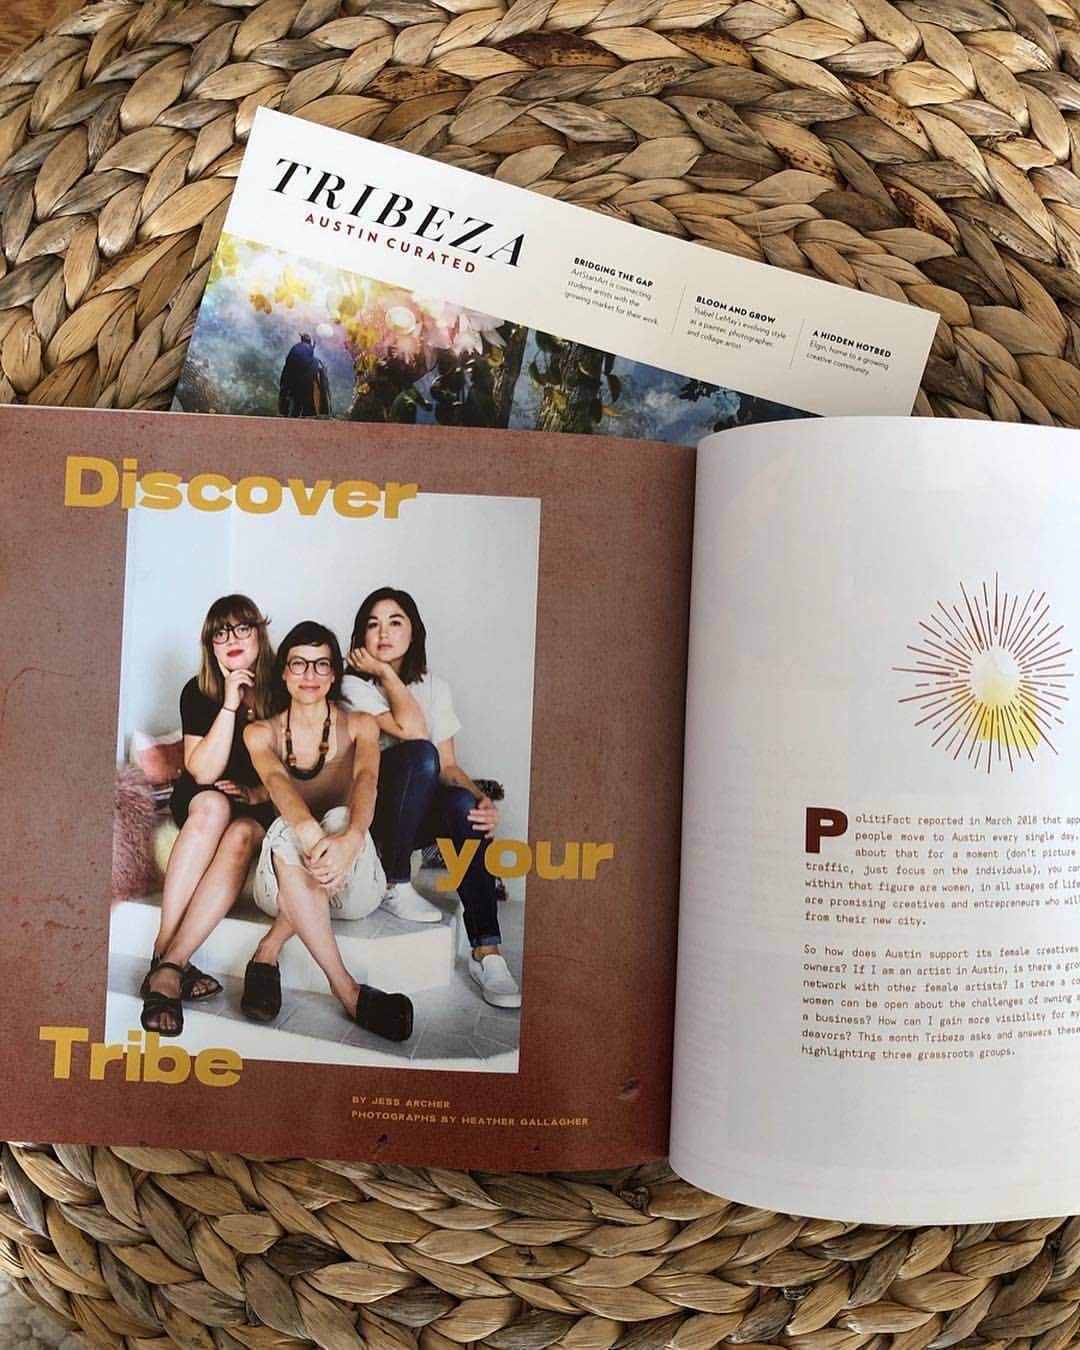 Many of you know the work we do @the_circle_austin. Many thanks and gratitude to @tribeza magazine for including us in their November Arts issue! I'm grateful to have the experience of this group in my life and to work with these talented ladies shown here beside me to support women in small business & entrepreneurship. 〰️ We have learned a lot in the past year & a half building this group & my heart has expanded from it in several ways. Health of mind, body & spirit is what @medicine_kitchen is all about… and @the_circle_austin has still got my spirit like 💫✨💗.   .  .  .  #medicinekitchen #heathergallagherphotography #anakoehler #thecircleaustin #womensupportingwomen #girlgang #womeninbusiness #womenhelpingwomen #bizclub #bizclubforever #tribeza #girlsclub #austinwomen #findyourtribe #findyourmagic  (at Austin, Texas)   https://www.instagram.com/p/Bp0n3PRlmeW/?utm_source=ig_tumblr_share&igshid=1k0qgm1cvpw0s